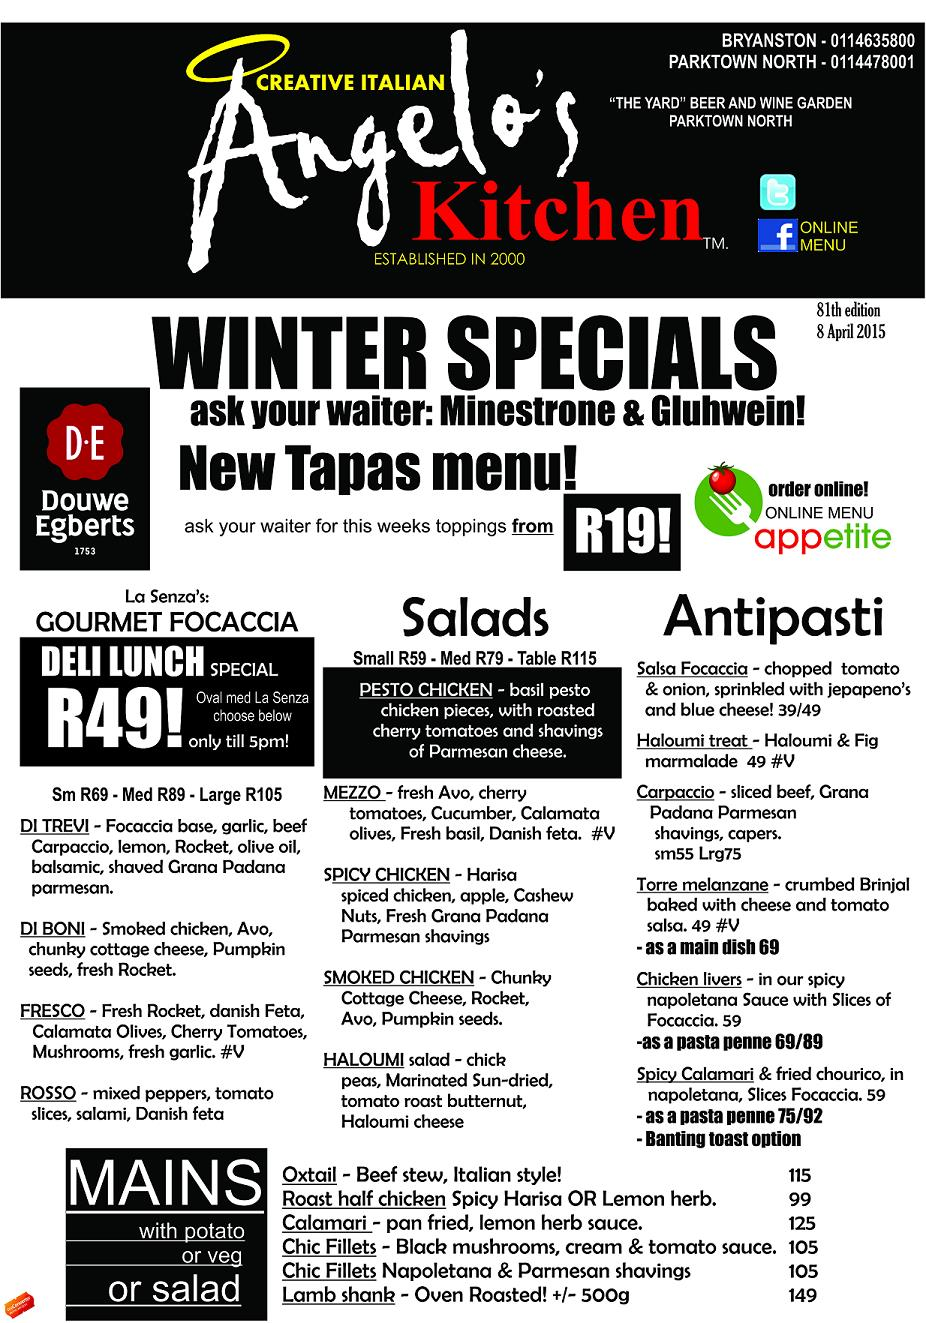 Angelos Kitchen Parktown North